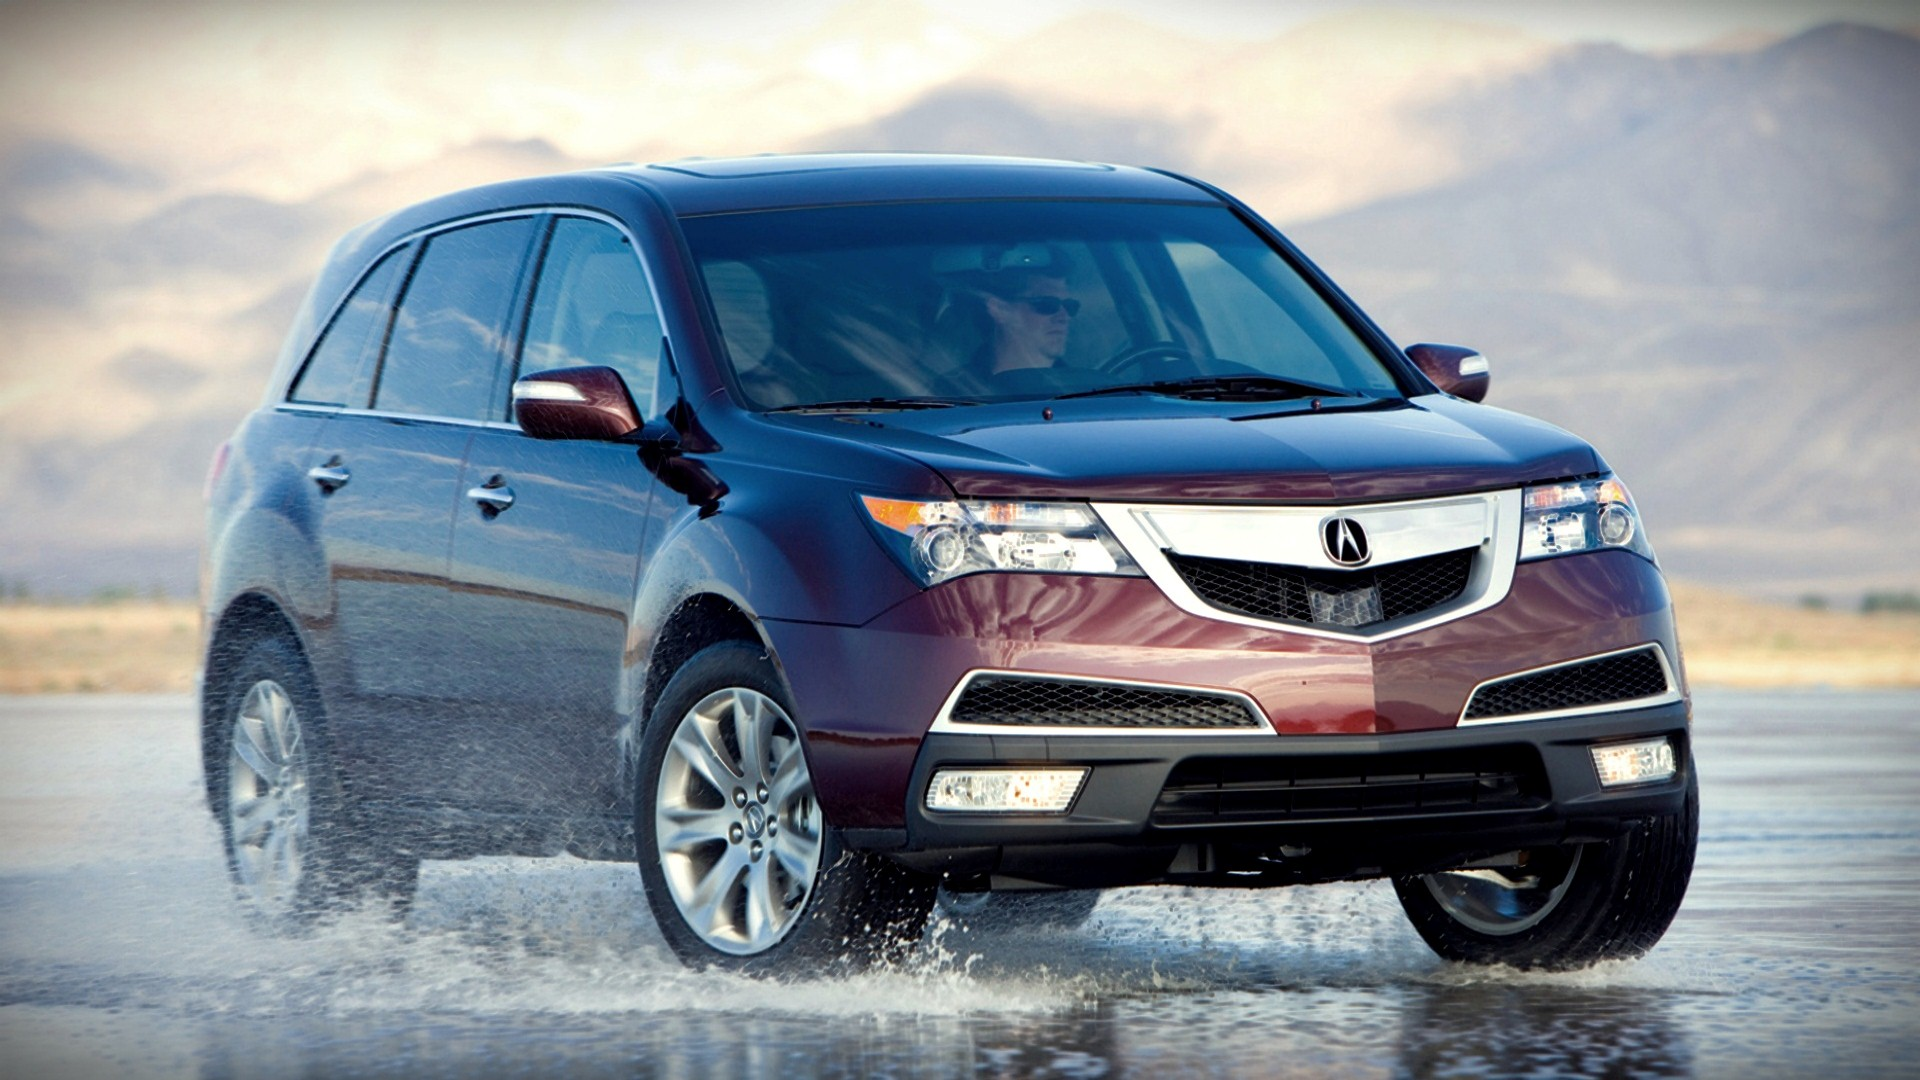 Acura-Mdx-Map-Update-1920-x-1080-wallpaper-wpc9002033